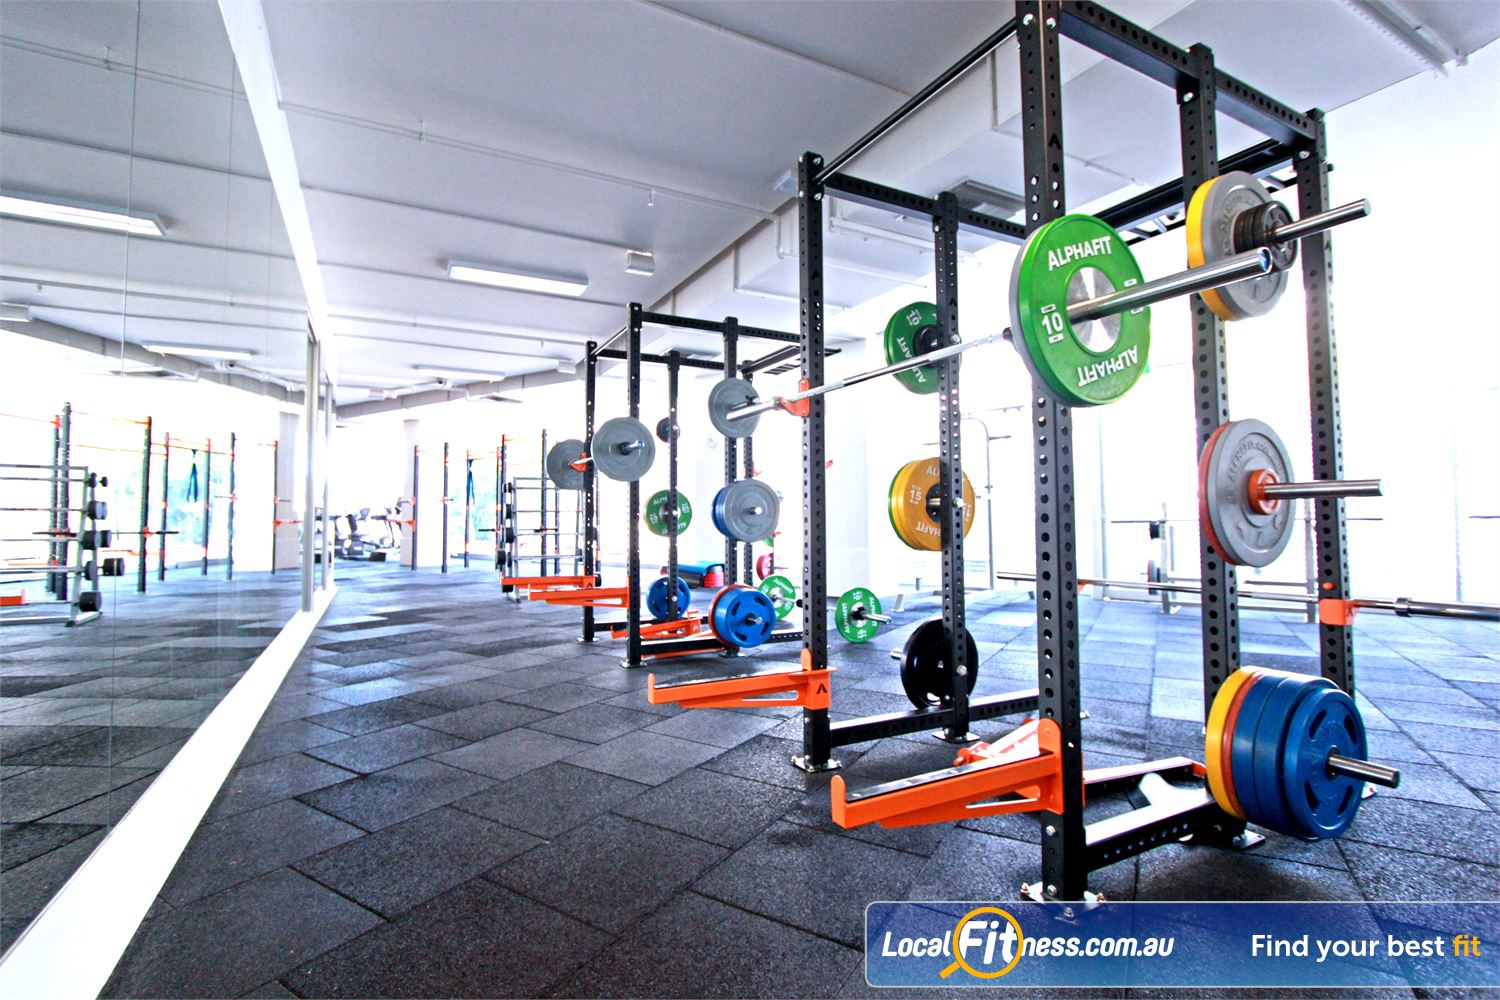 South Pacific Health Clubs Mentone Enjoy World Class facilities at our Mentone gym.